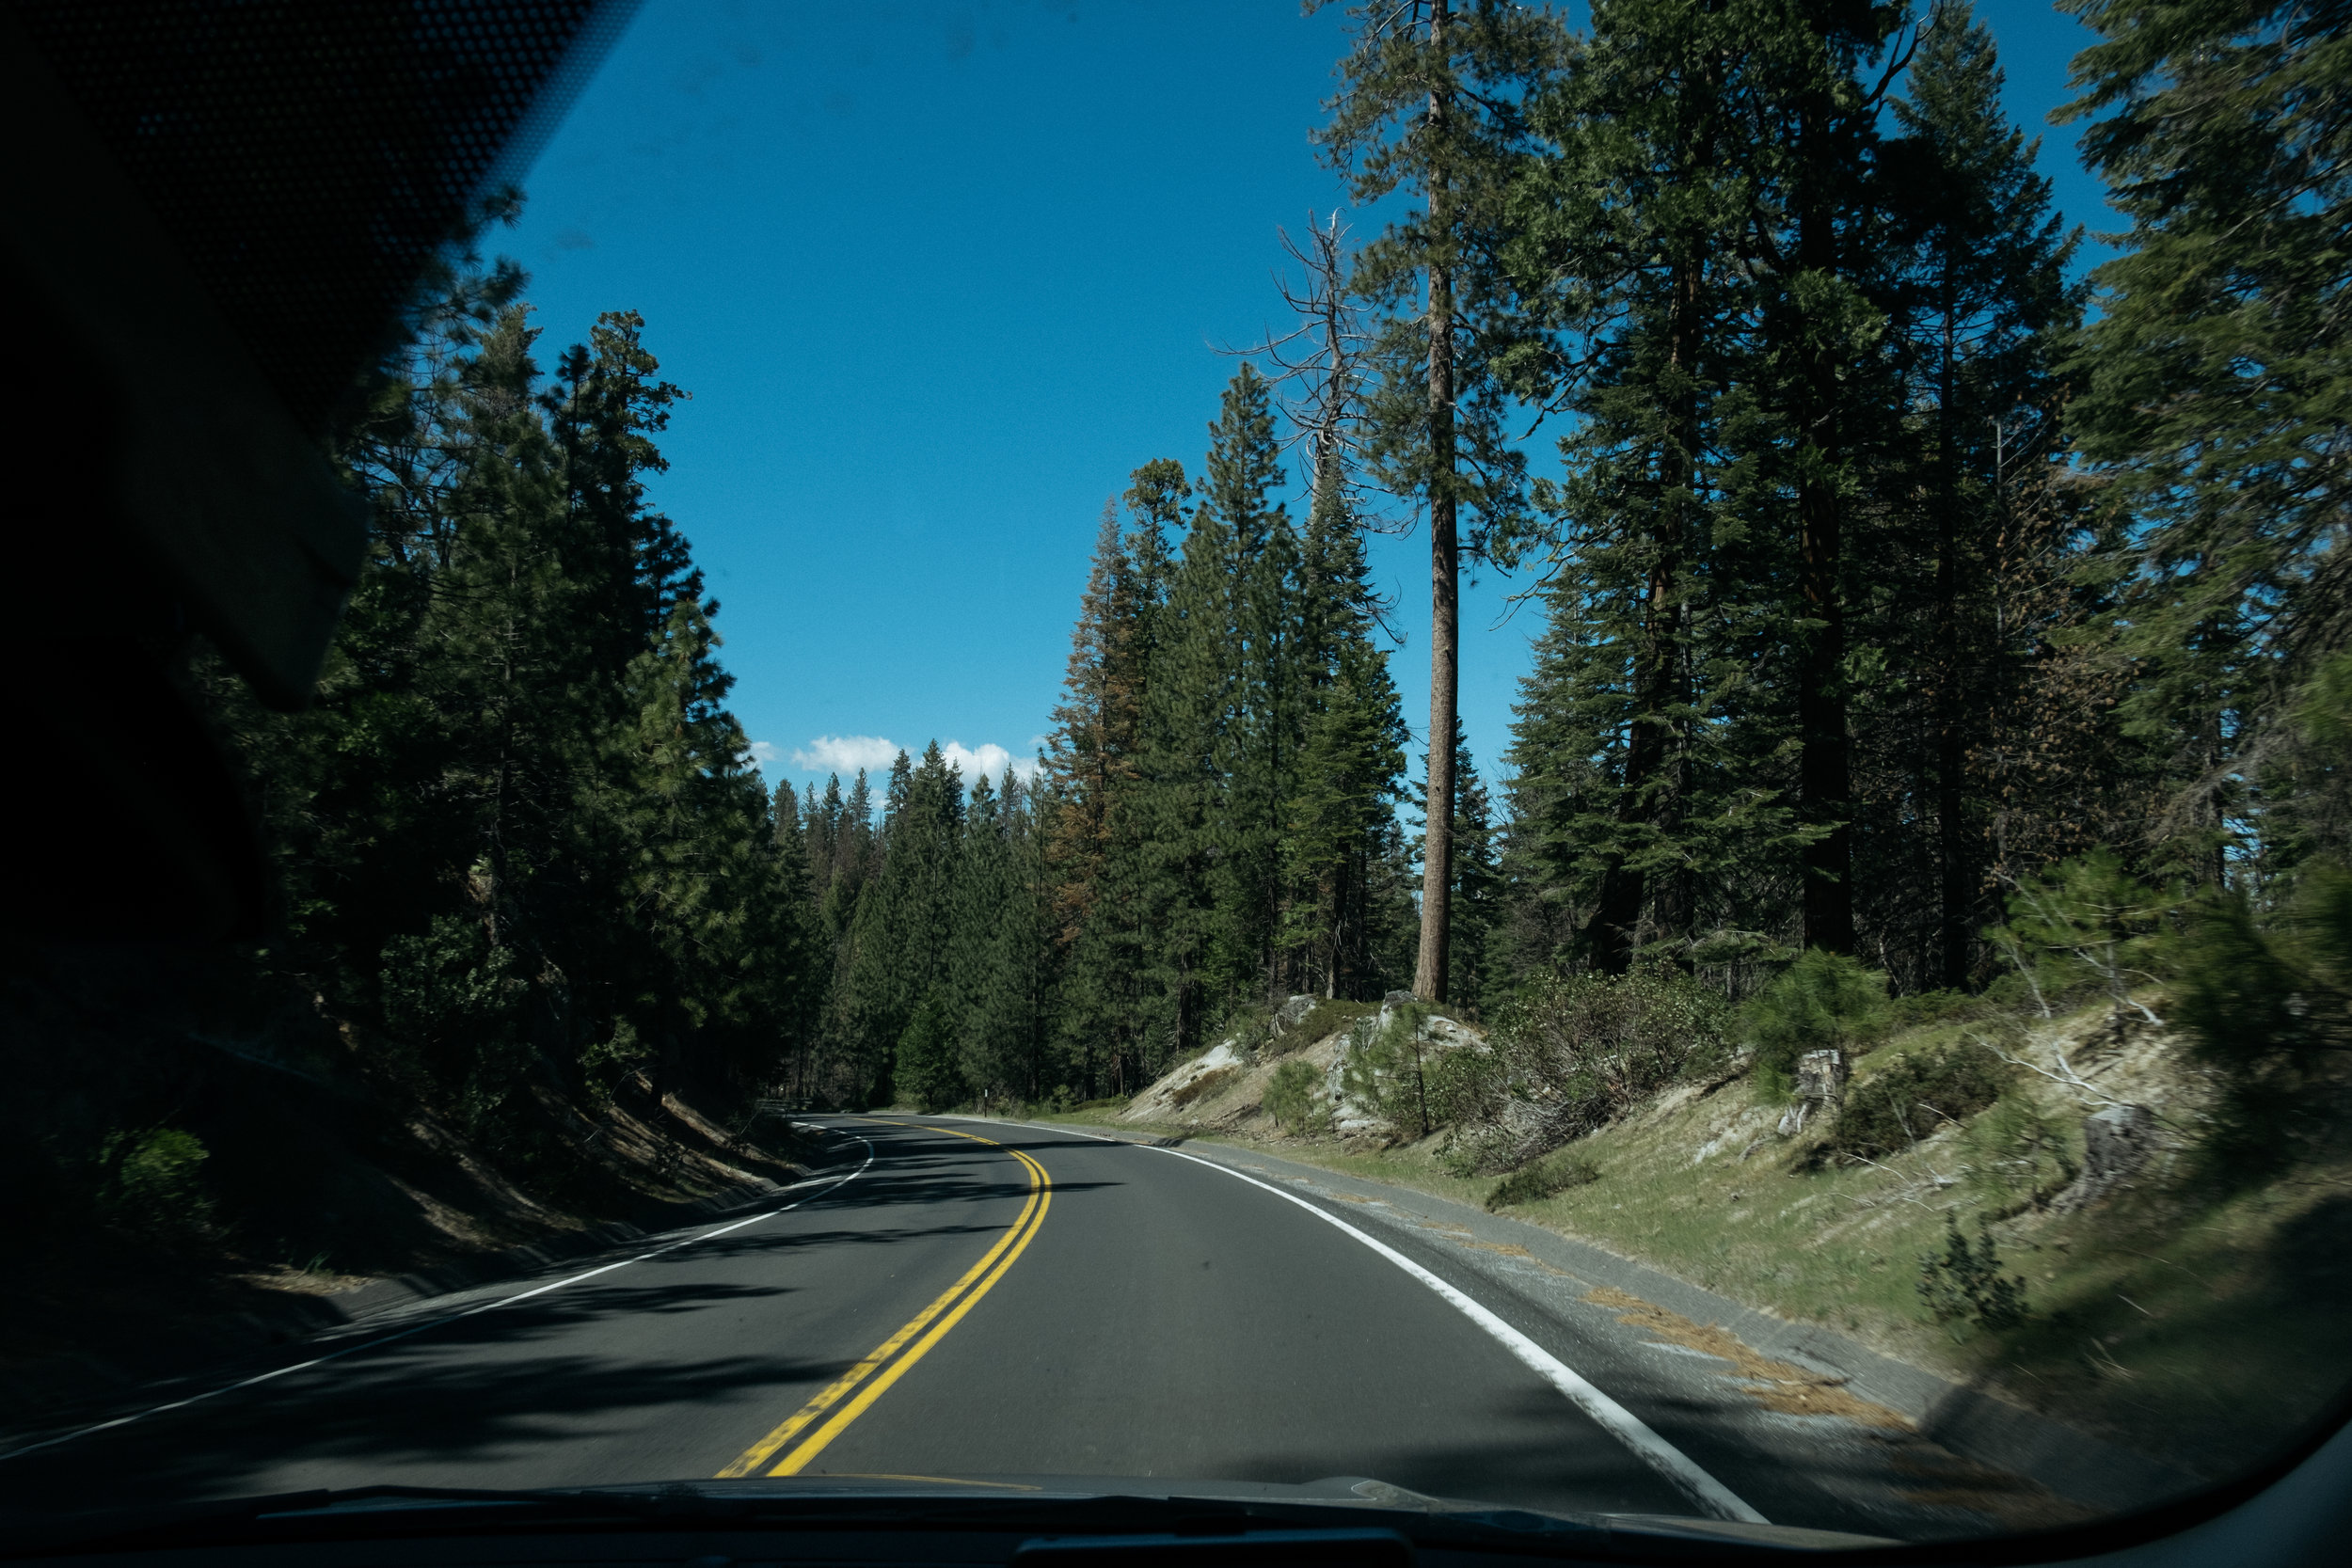 Driving through Yosemite National Park